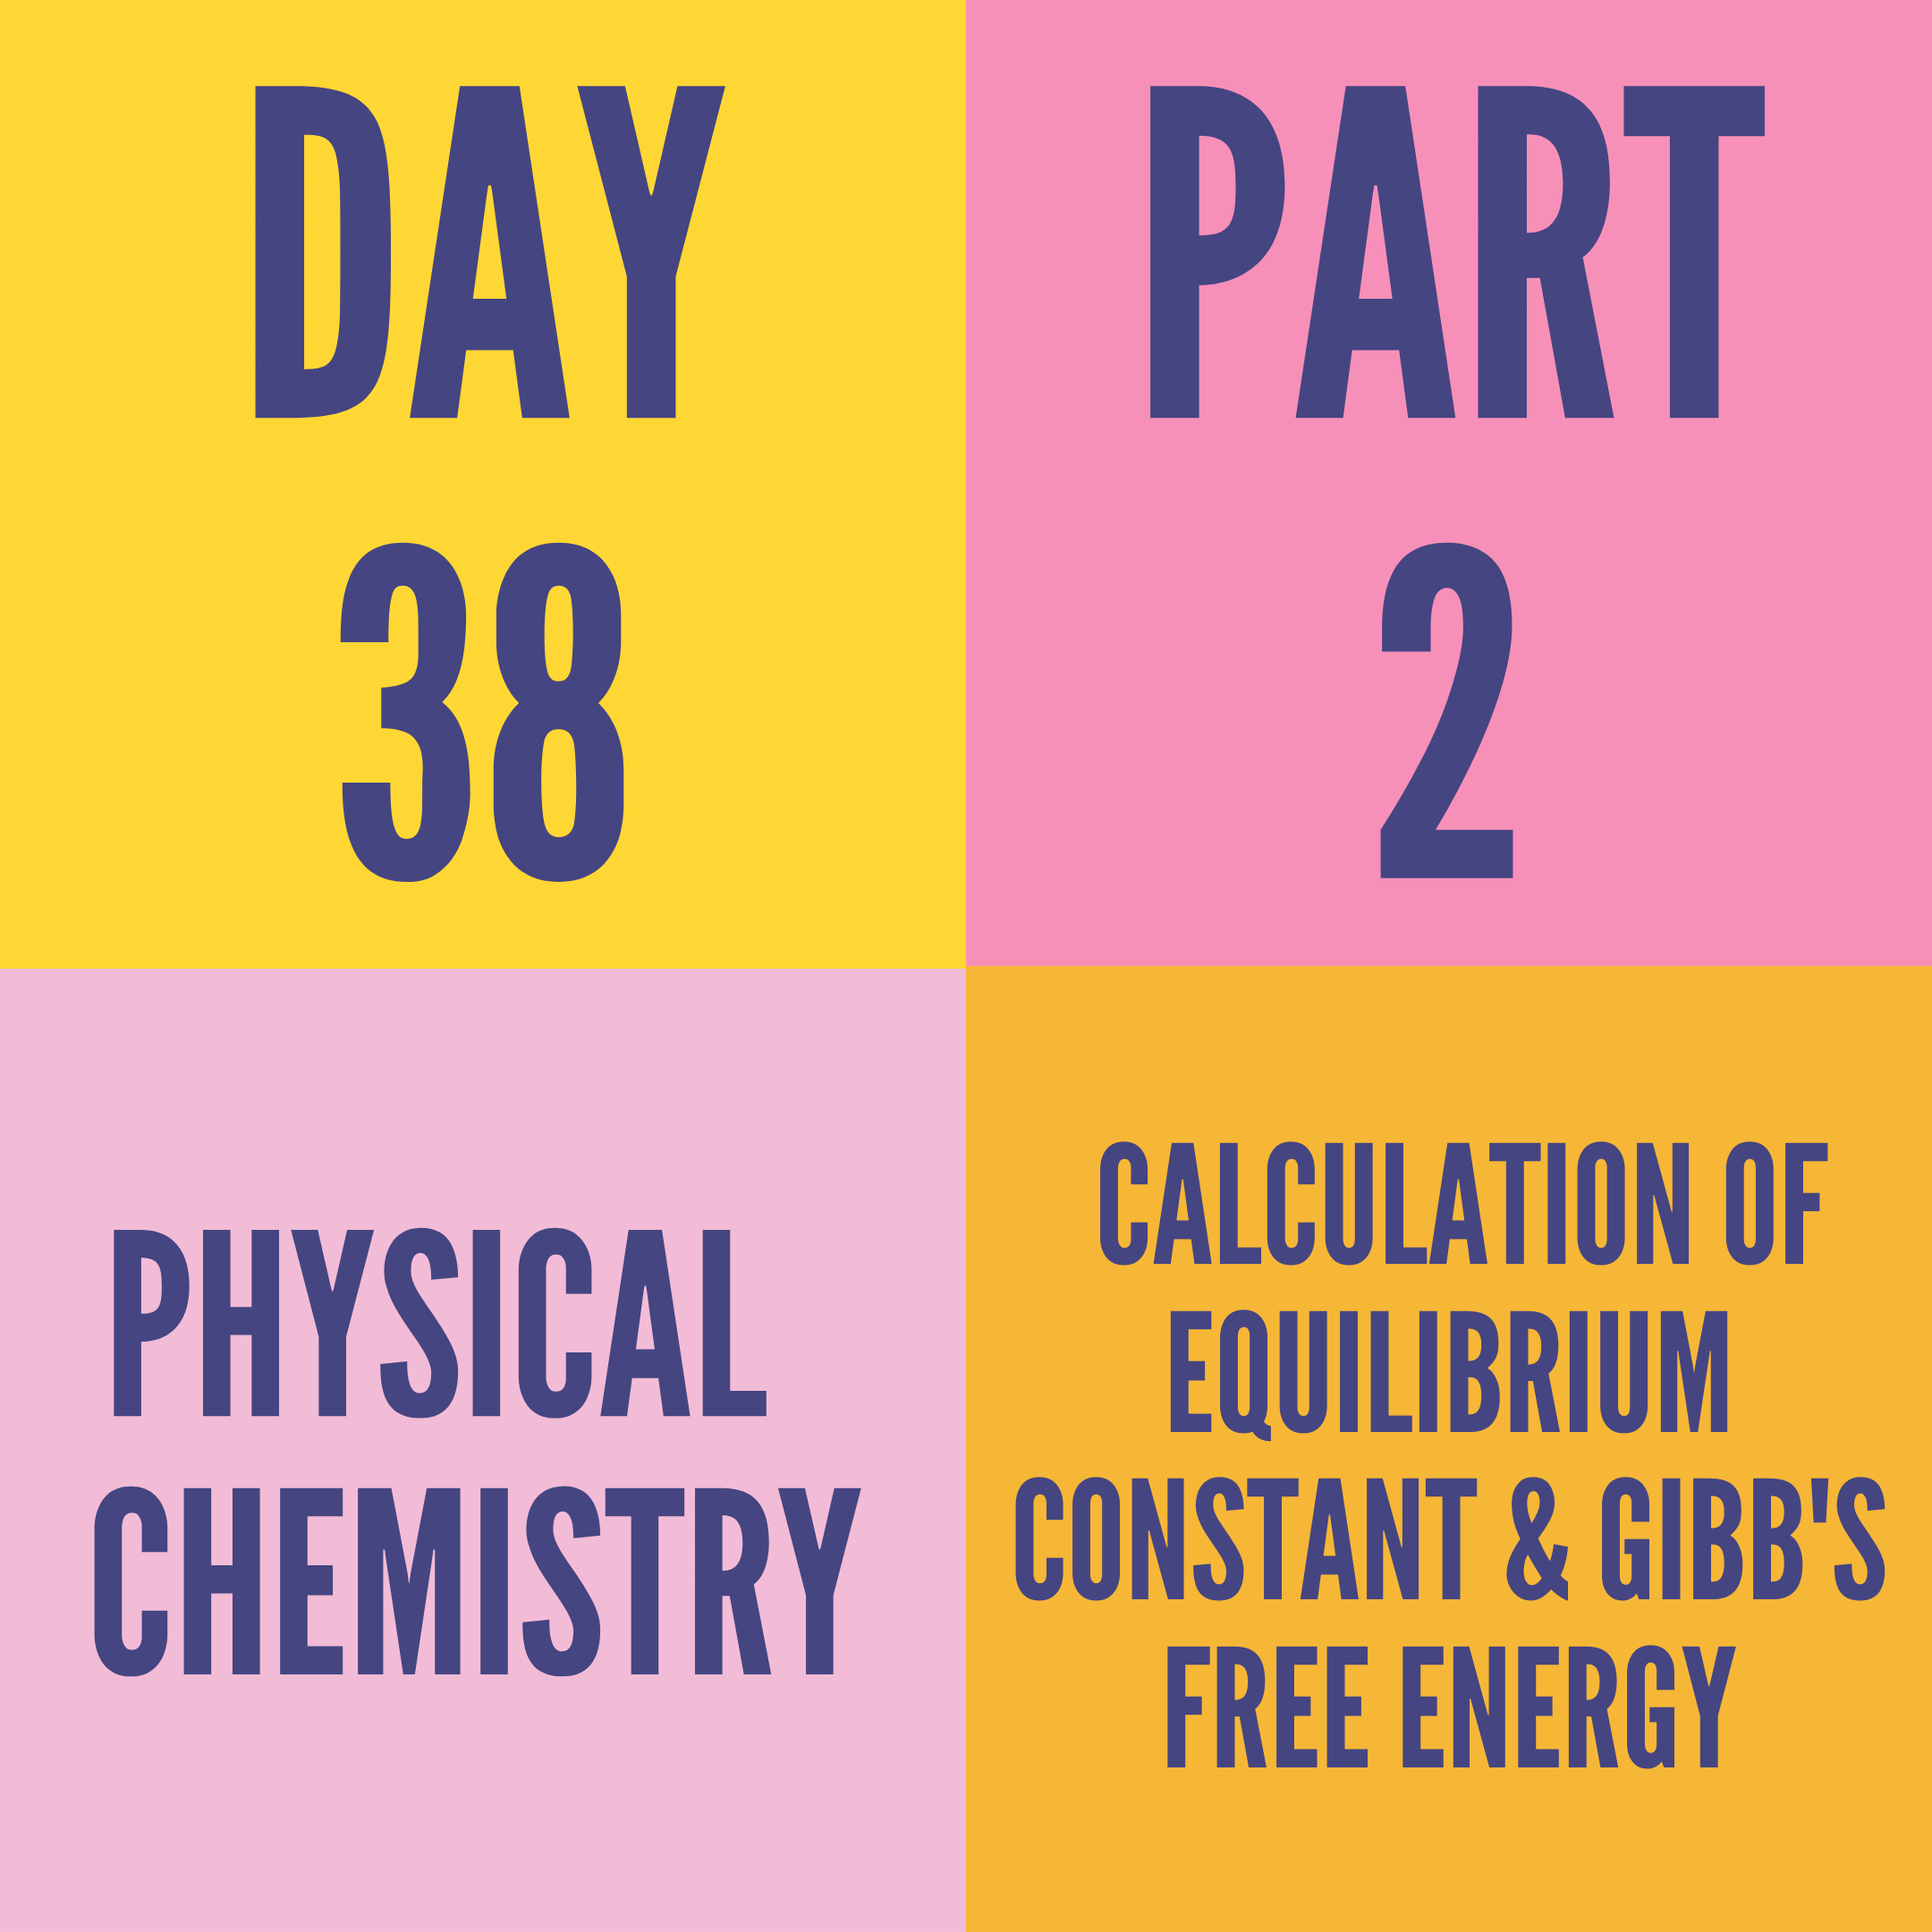 DAY-38 PART-2 CALCULATION OF EQUILIBRIUM CONSTANT & GIBB'S FREE ENERGY